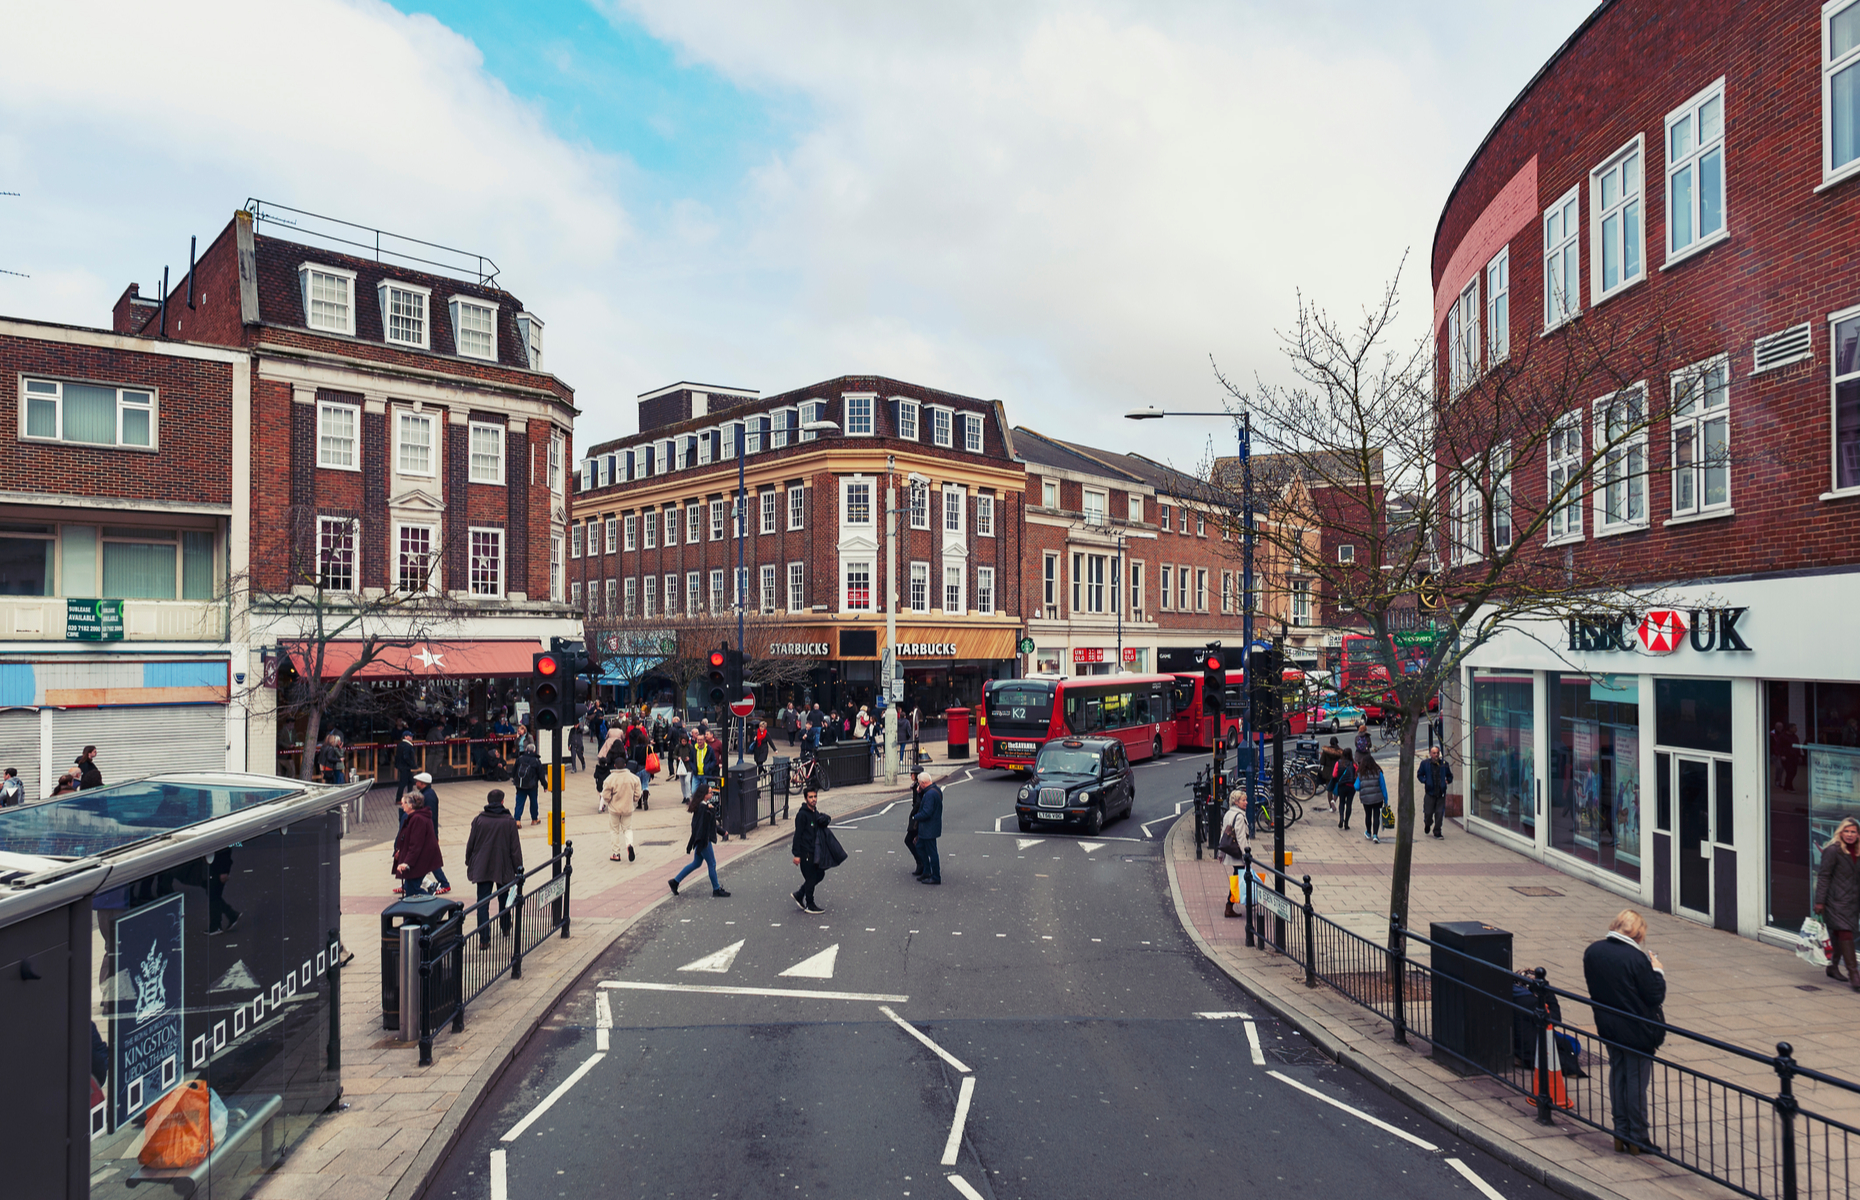 Kingston upon Thames, another Greater London borough, came in at number four. Image: Gaid Kornsilapa / Shutterstock